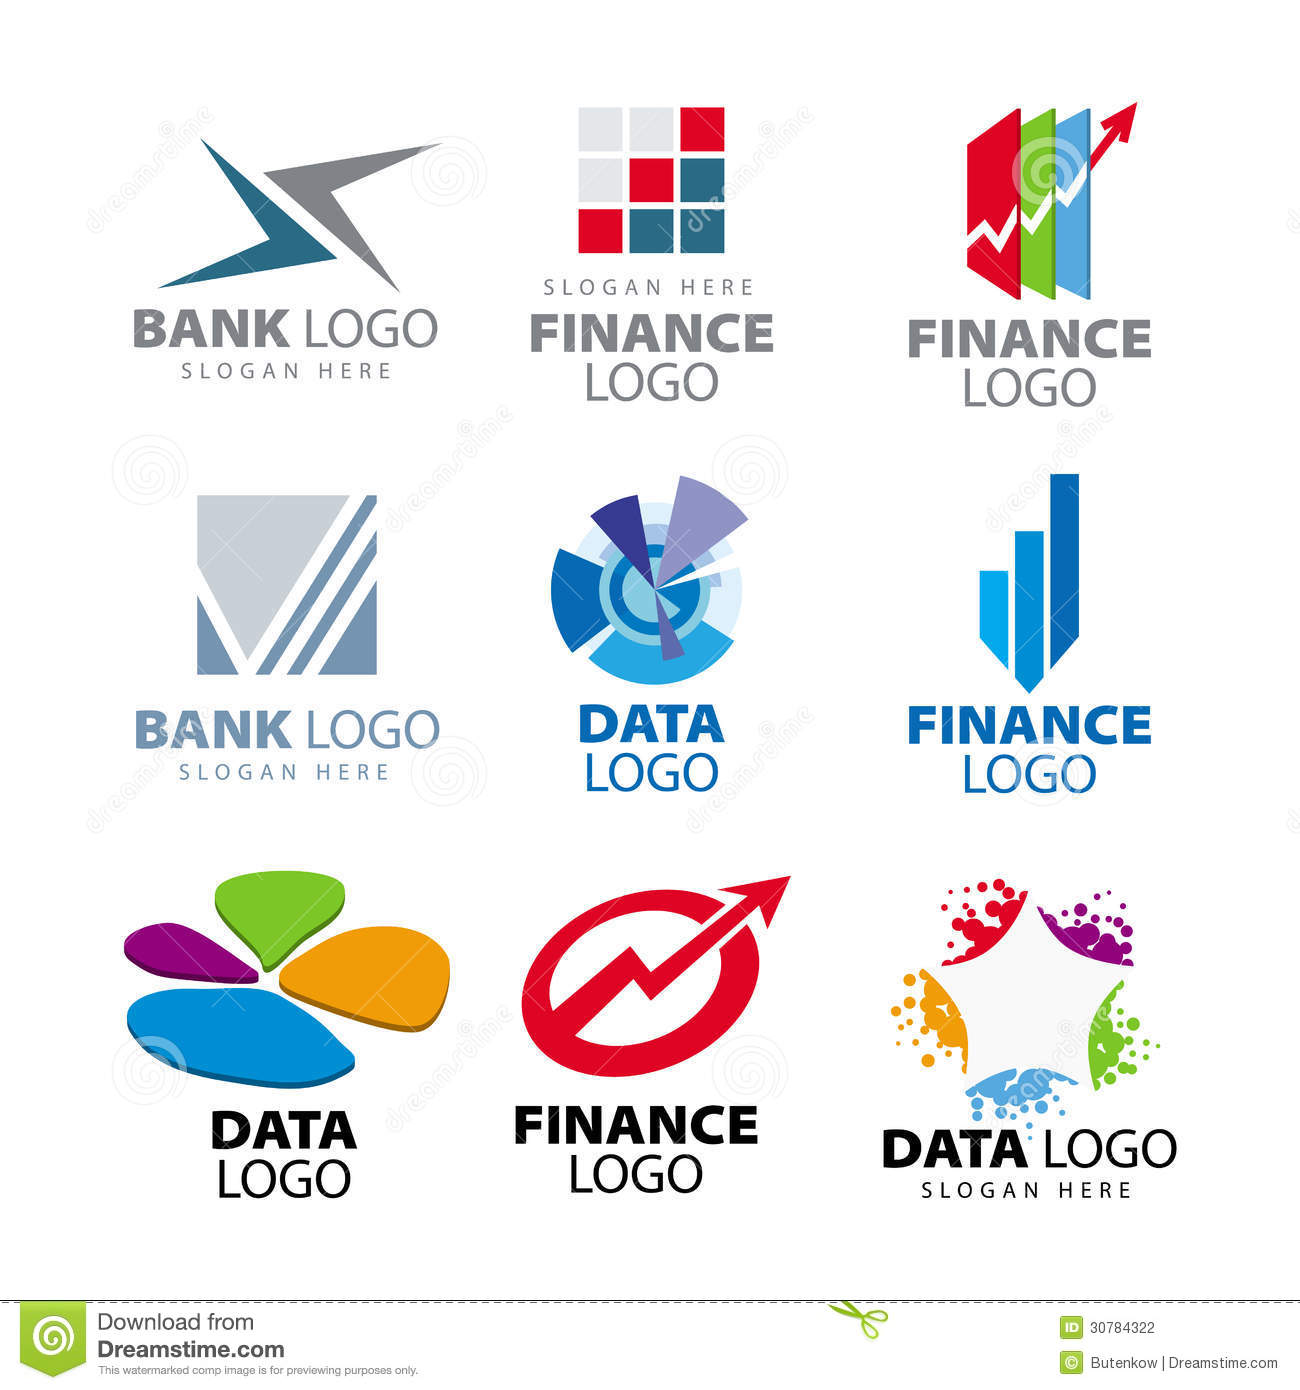 how to use digital technology to financial information